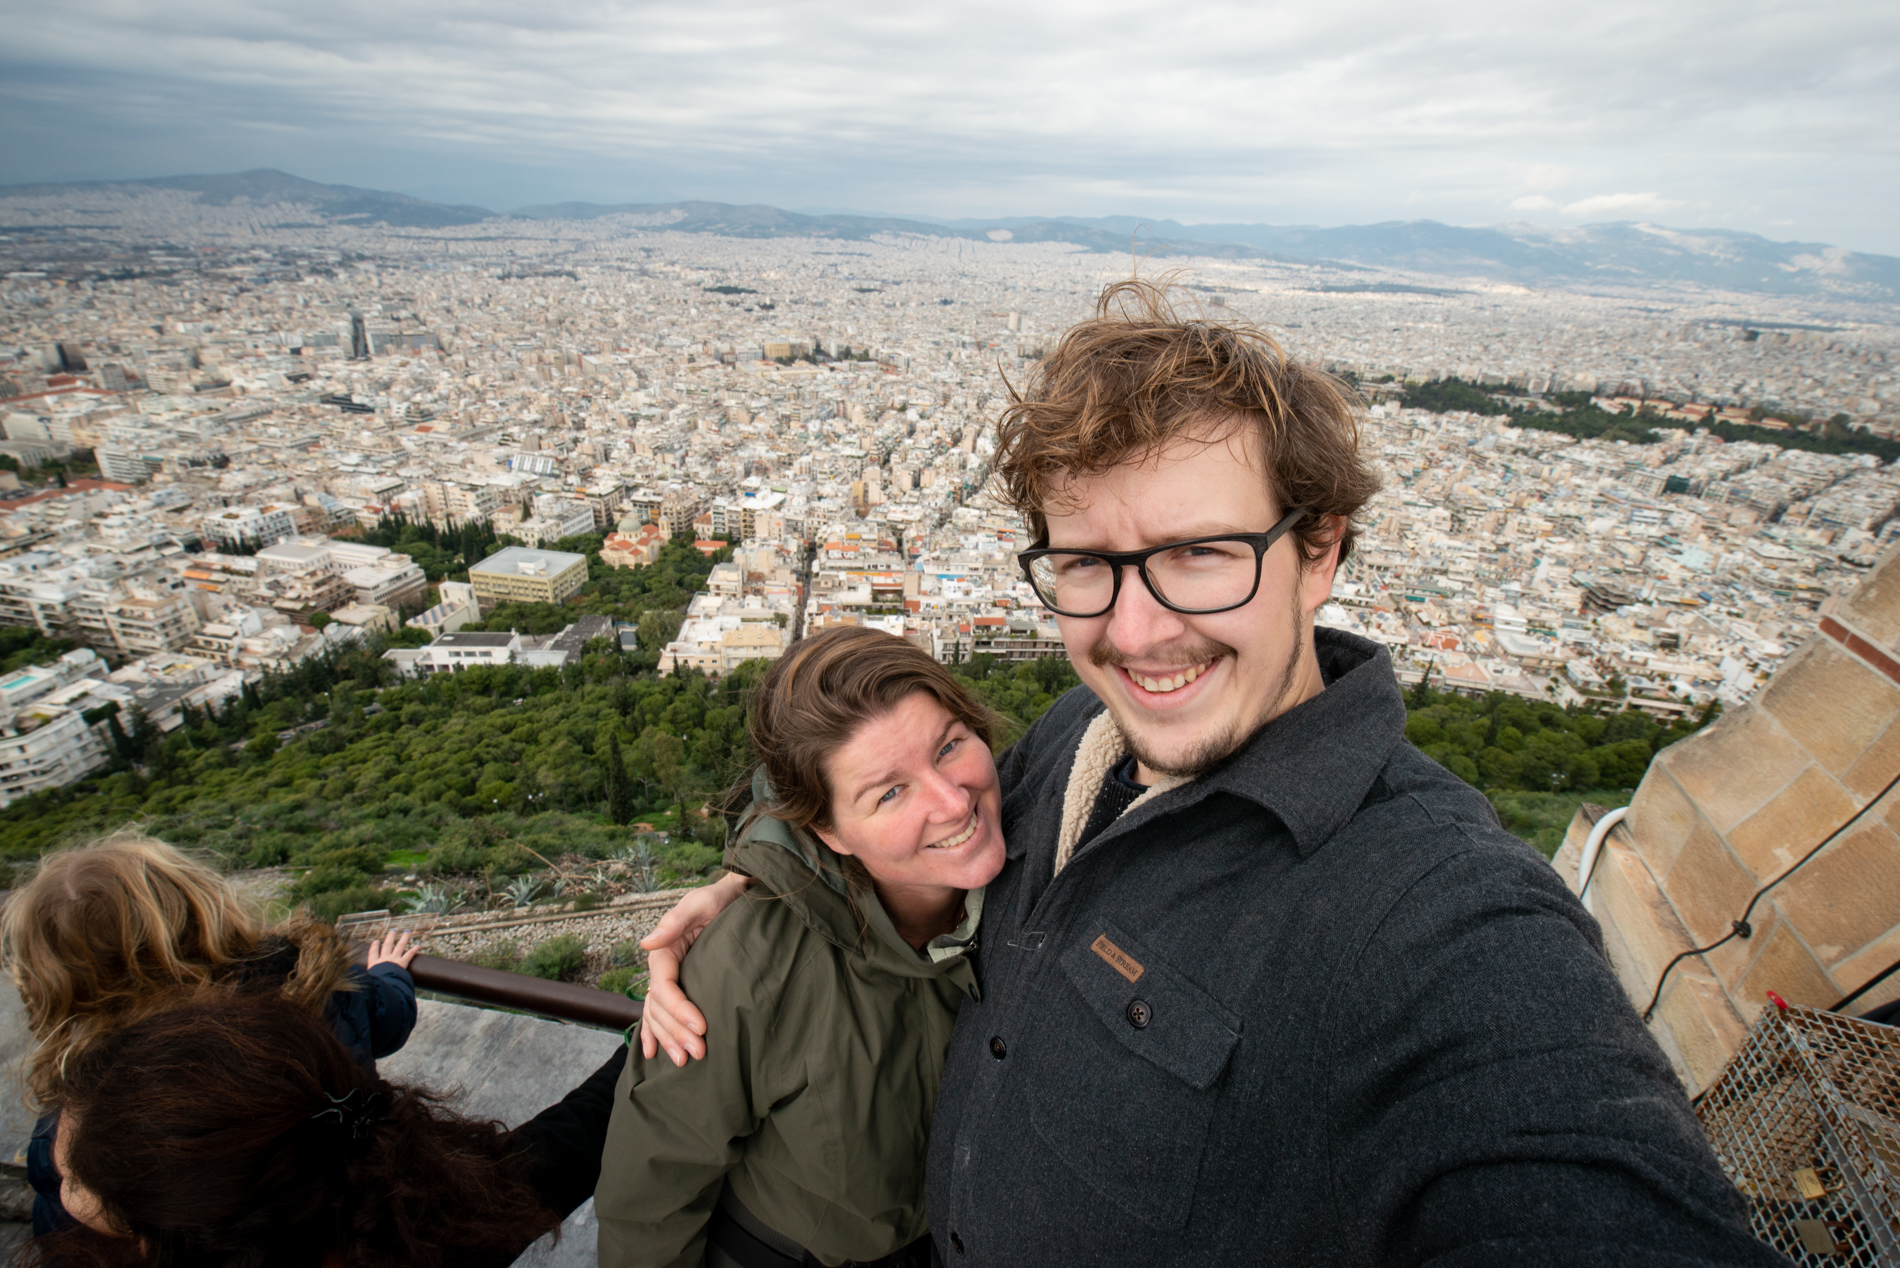 Ellis and me with a view over Thessaloniki. Cloudy day.